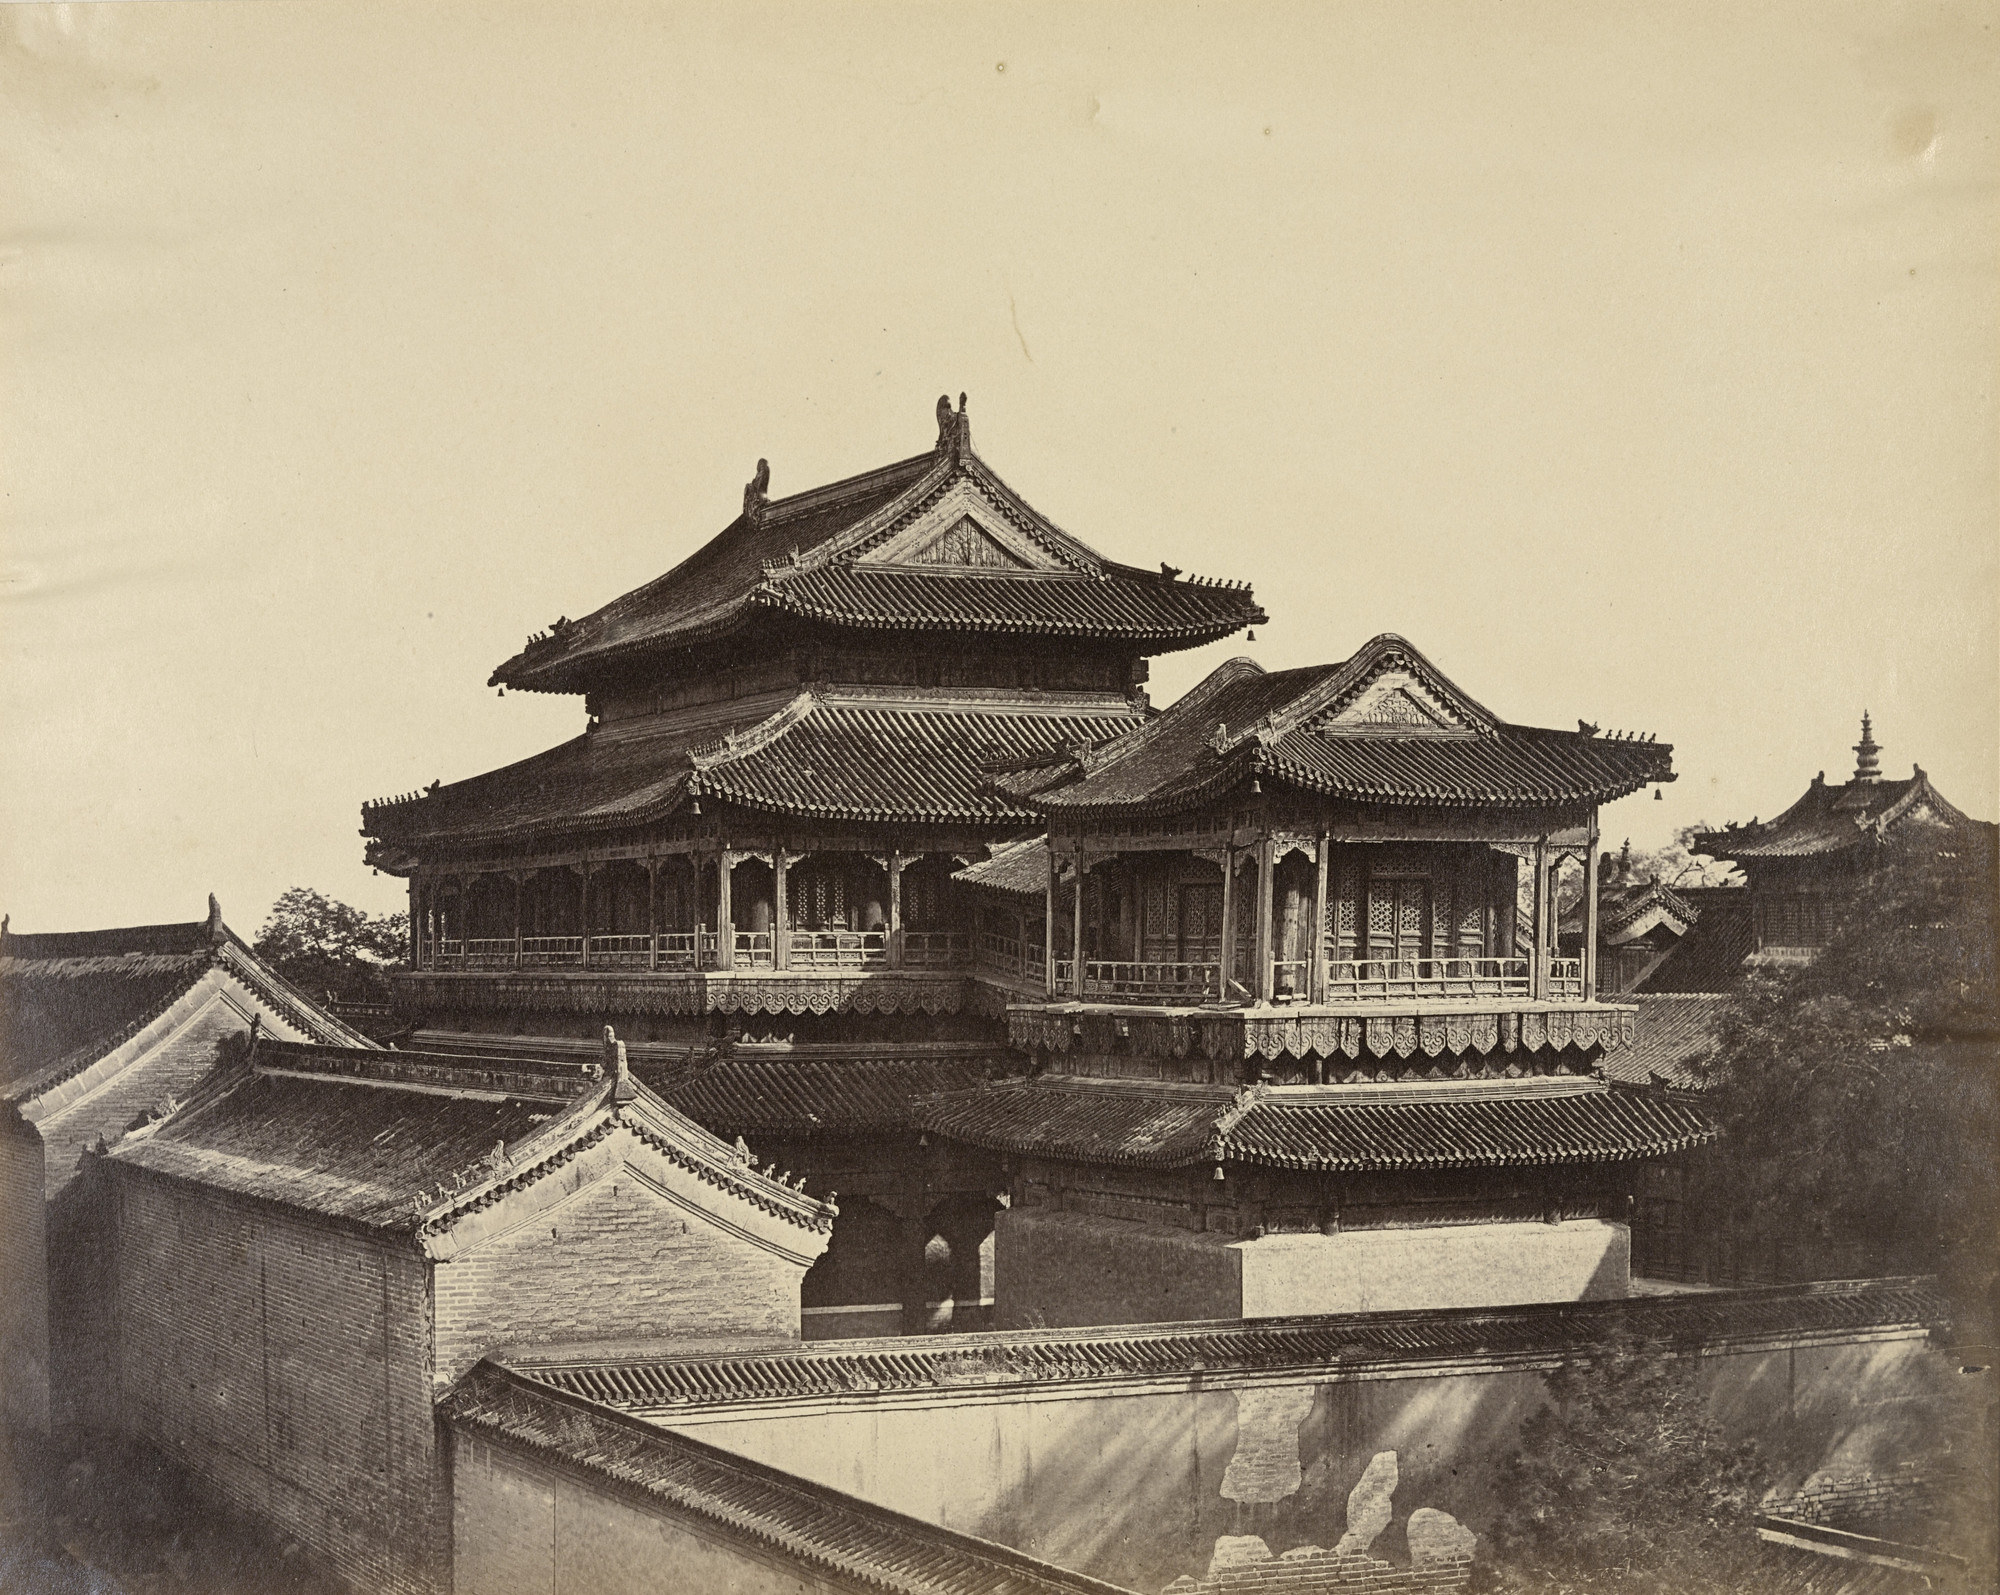 Felice Beato. Temple of Confucius, Pekin. October 1860